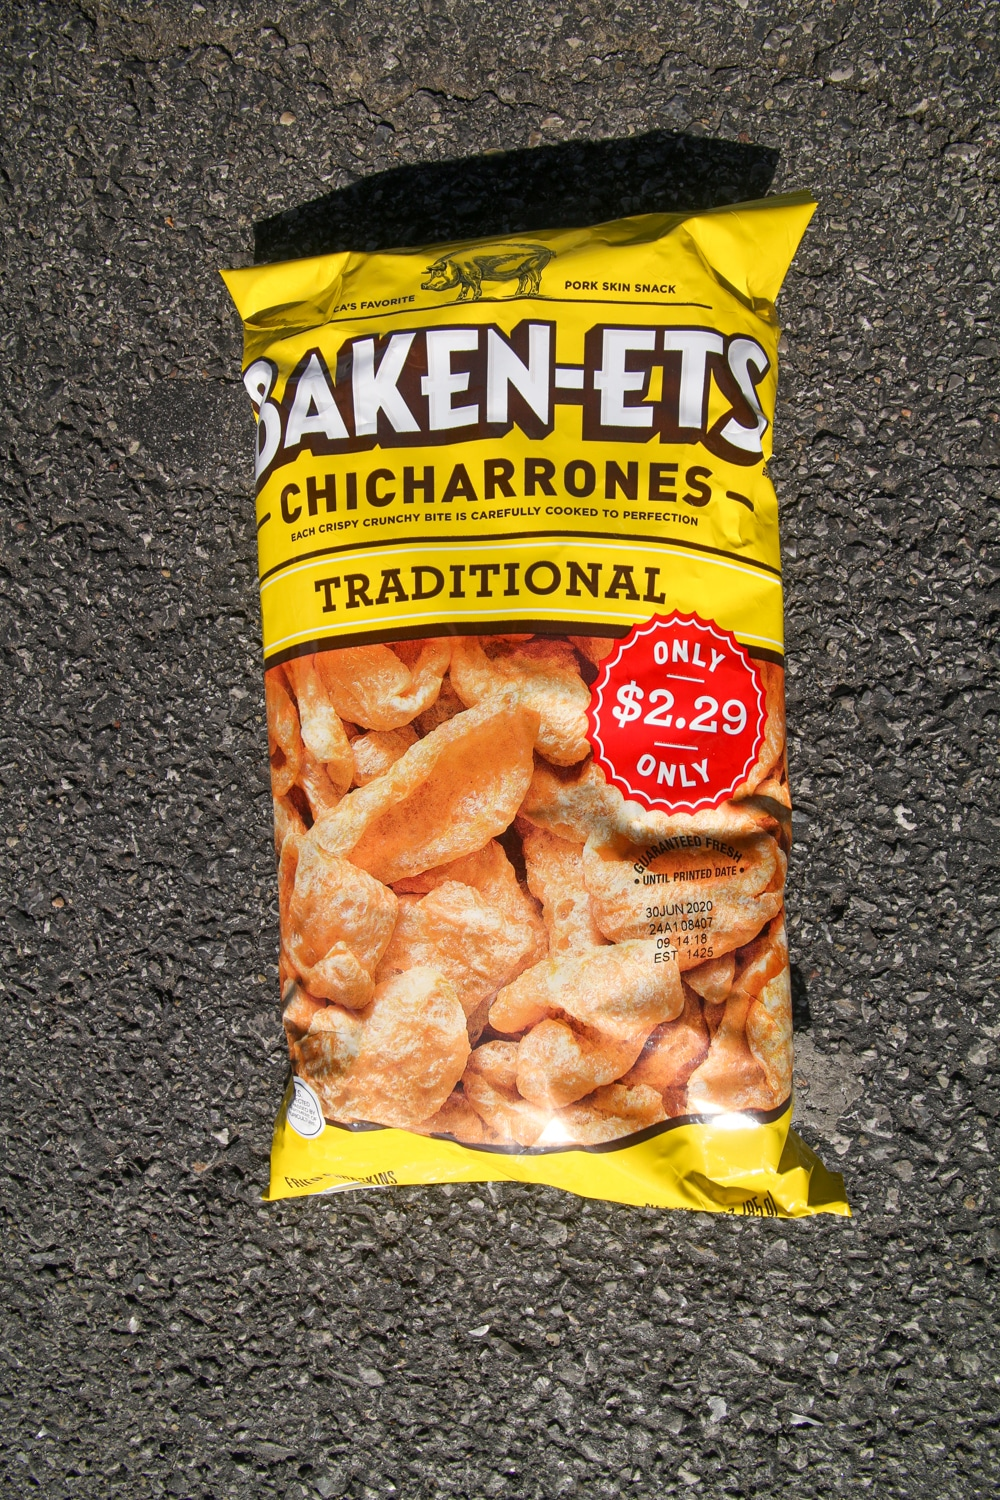 A bag of pig skin chicharrones.